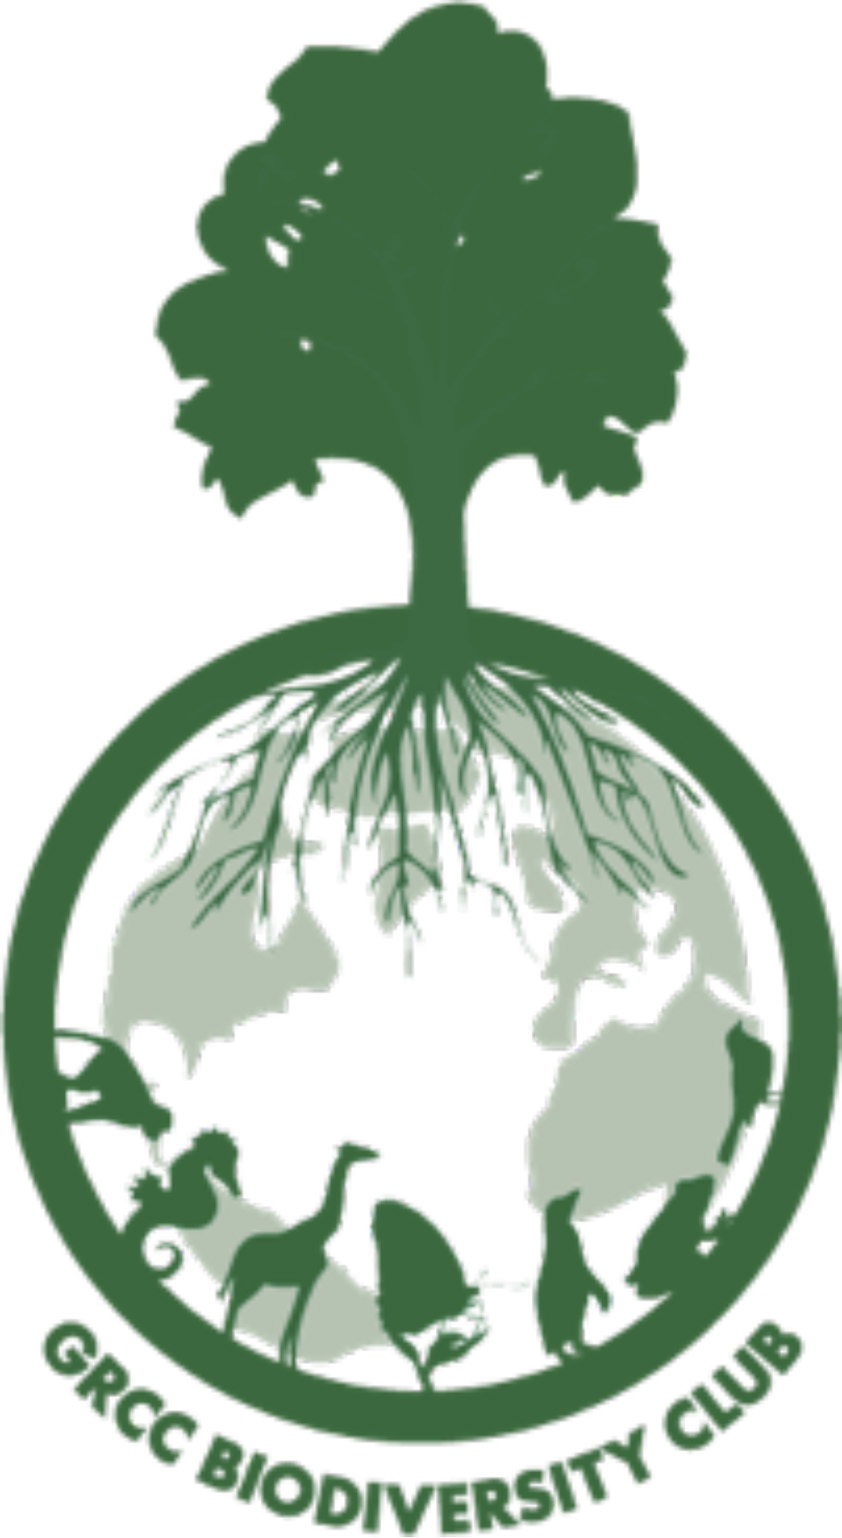 Biodiversity club logo with the roots of a tree forming the silhouette of the earth